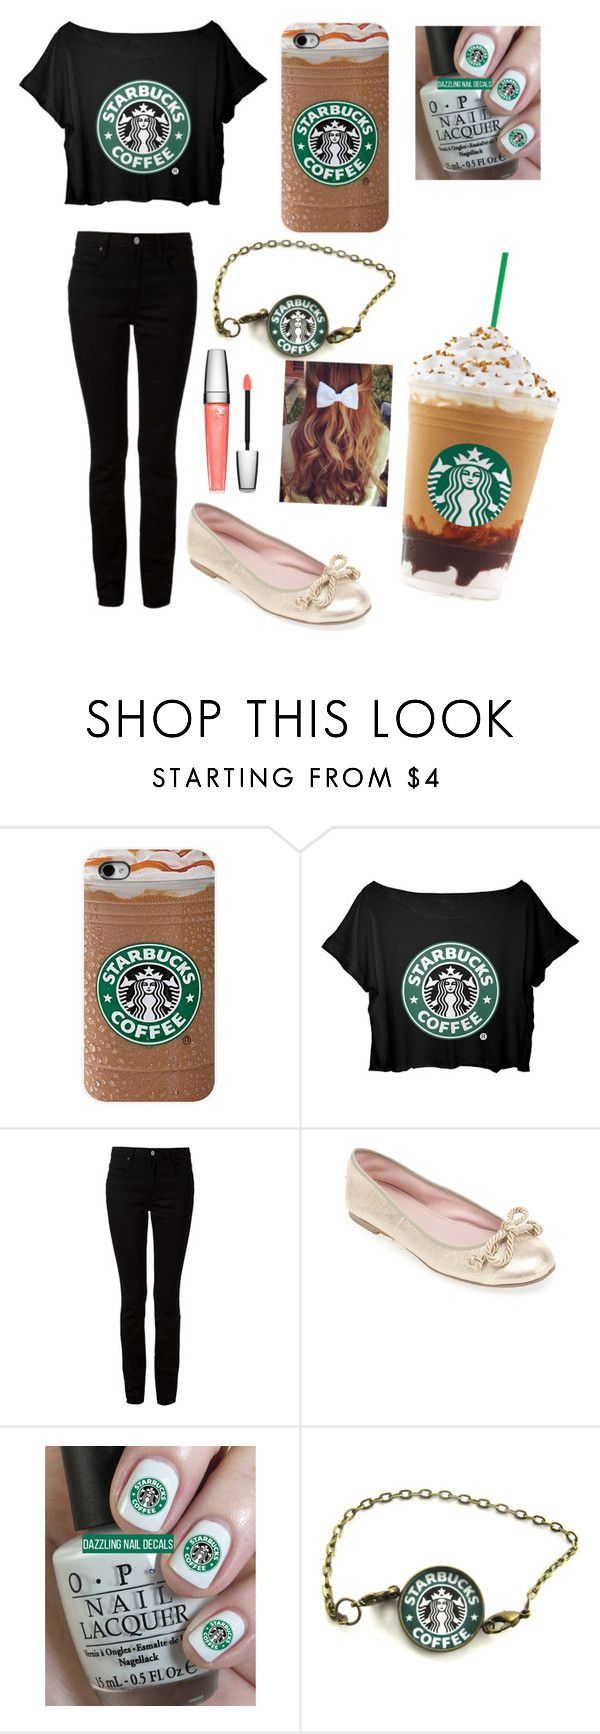 """Starbucks"" by danbea ❤ liked on Polyvore featuring Alexander Wang, La Canadienne and Lancôme"